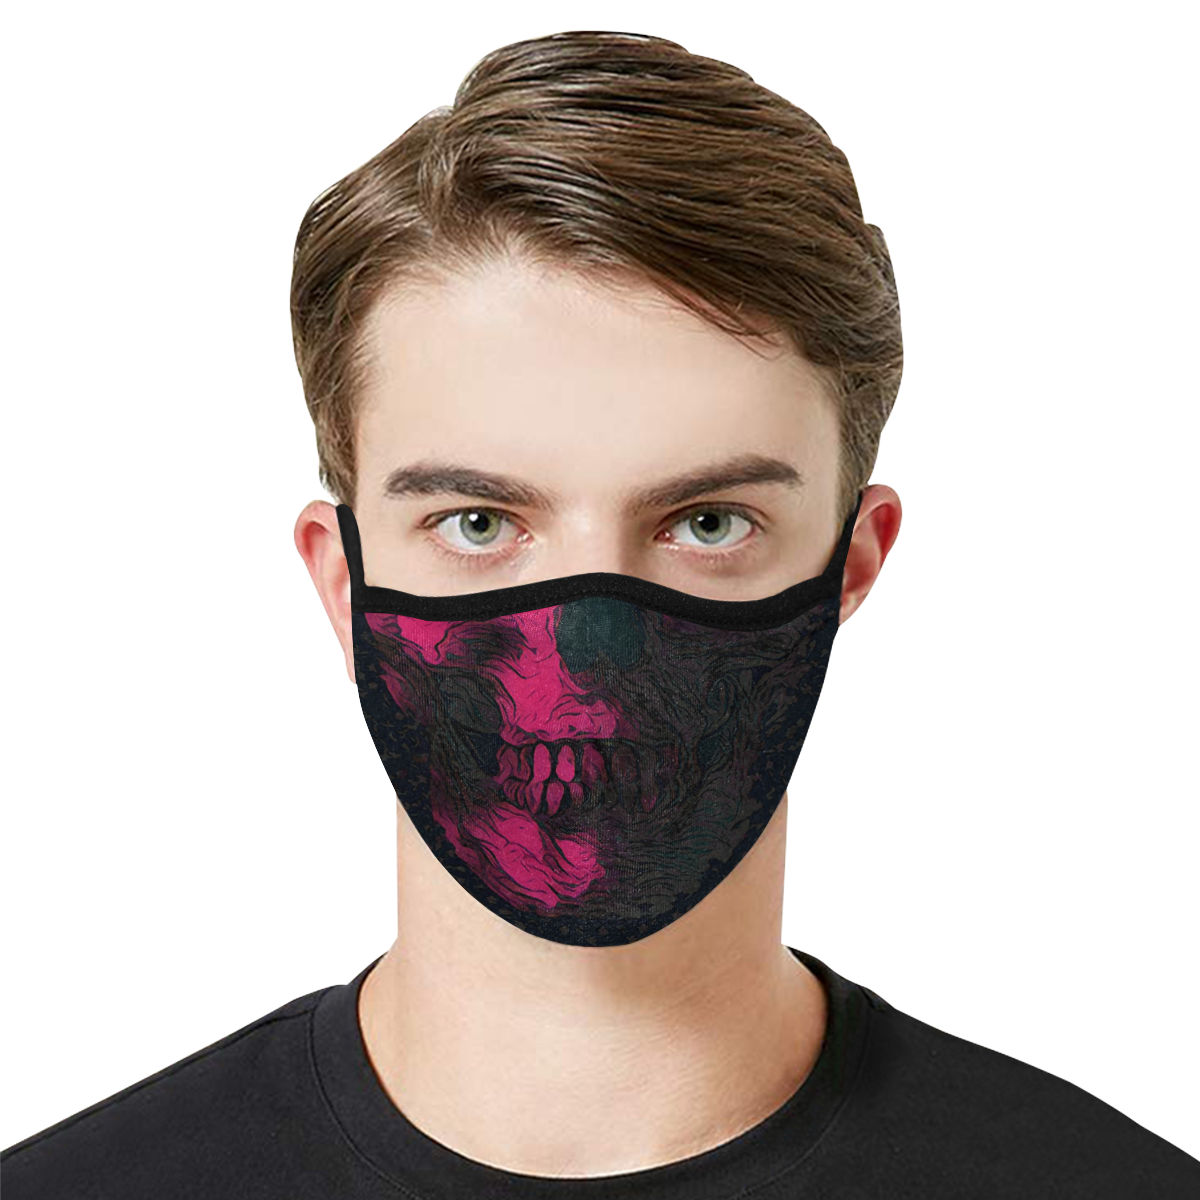 SKULL CAMOU PINK MASK Mouth Mask in One Piece (2 Filters Included) (Model M02) (Non-medical Products)